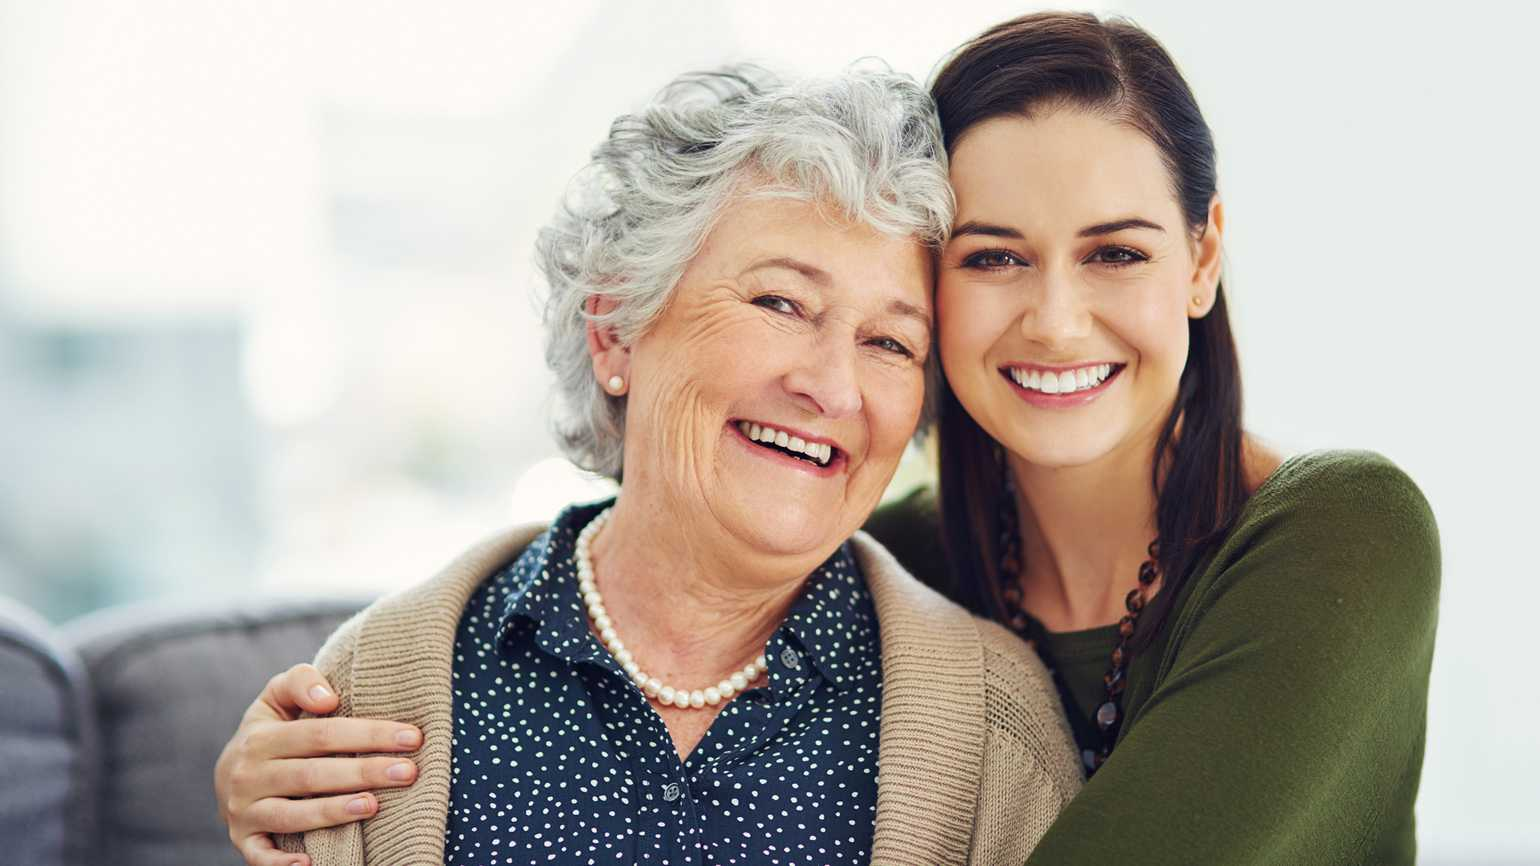 Portrait of a happy young woman spending time with her mom at home.